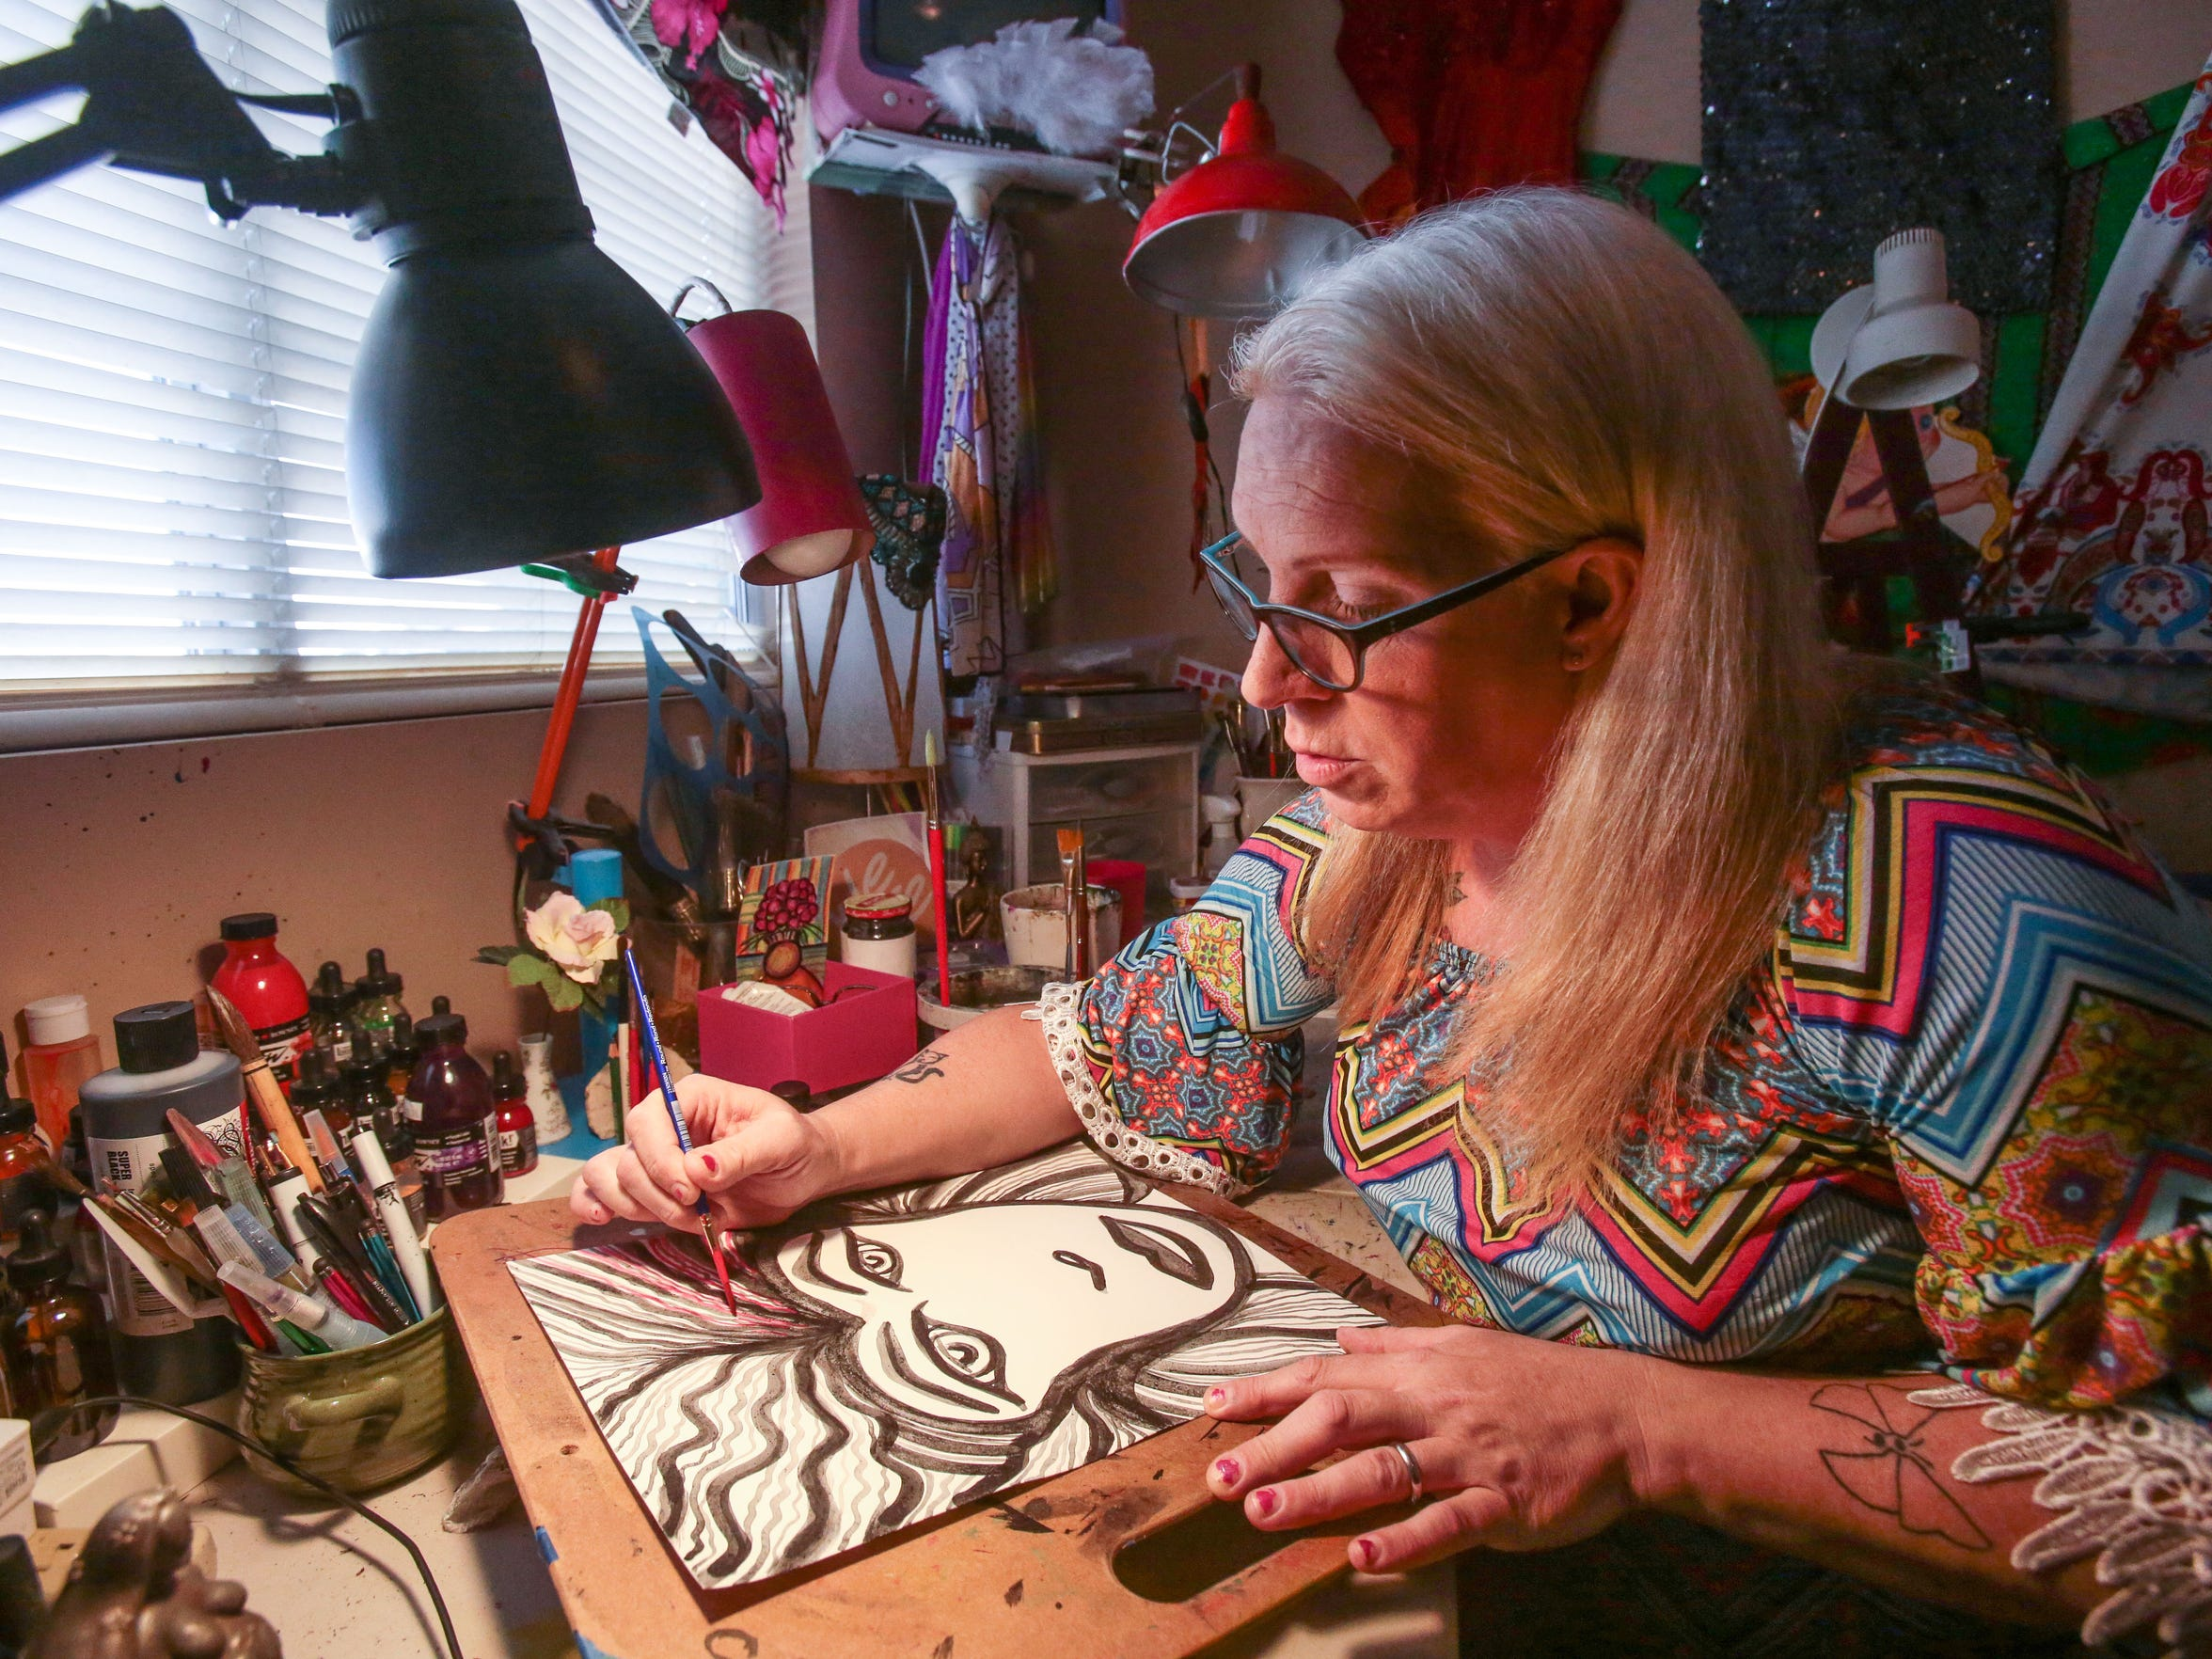 Jennifer Nicole Sweet paints in her home studio in Palm Springs on Tuesday, October 31, 2016. She lives with her wife Candice Marie Sweet who is a sculptor.